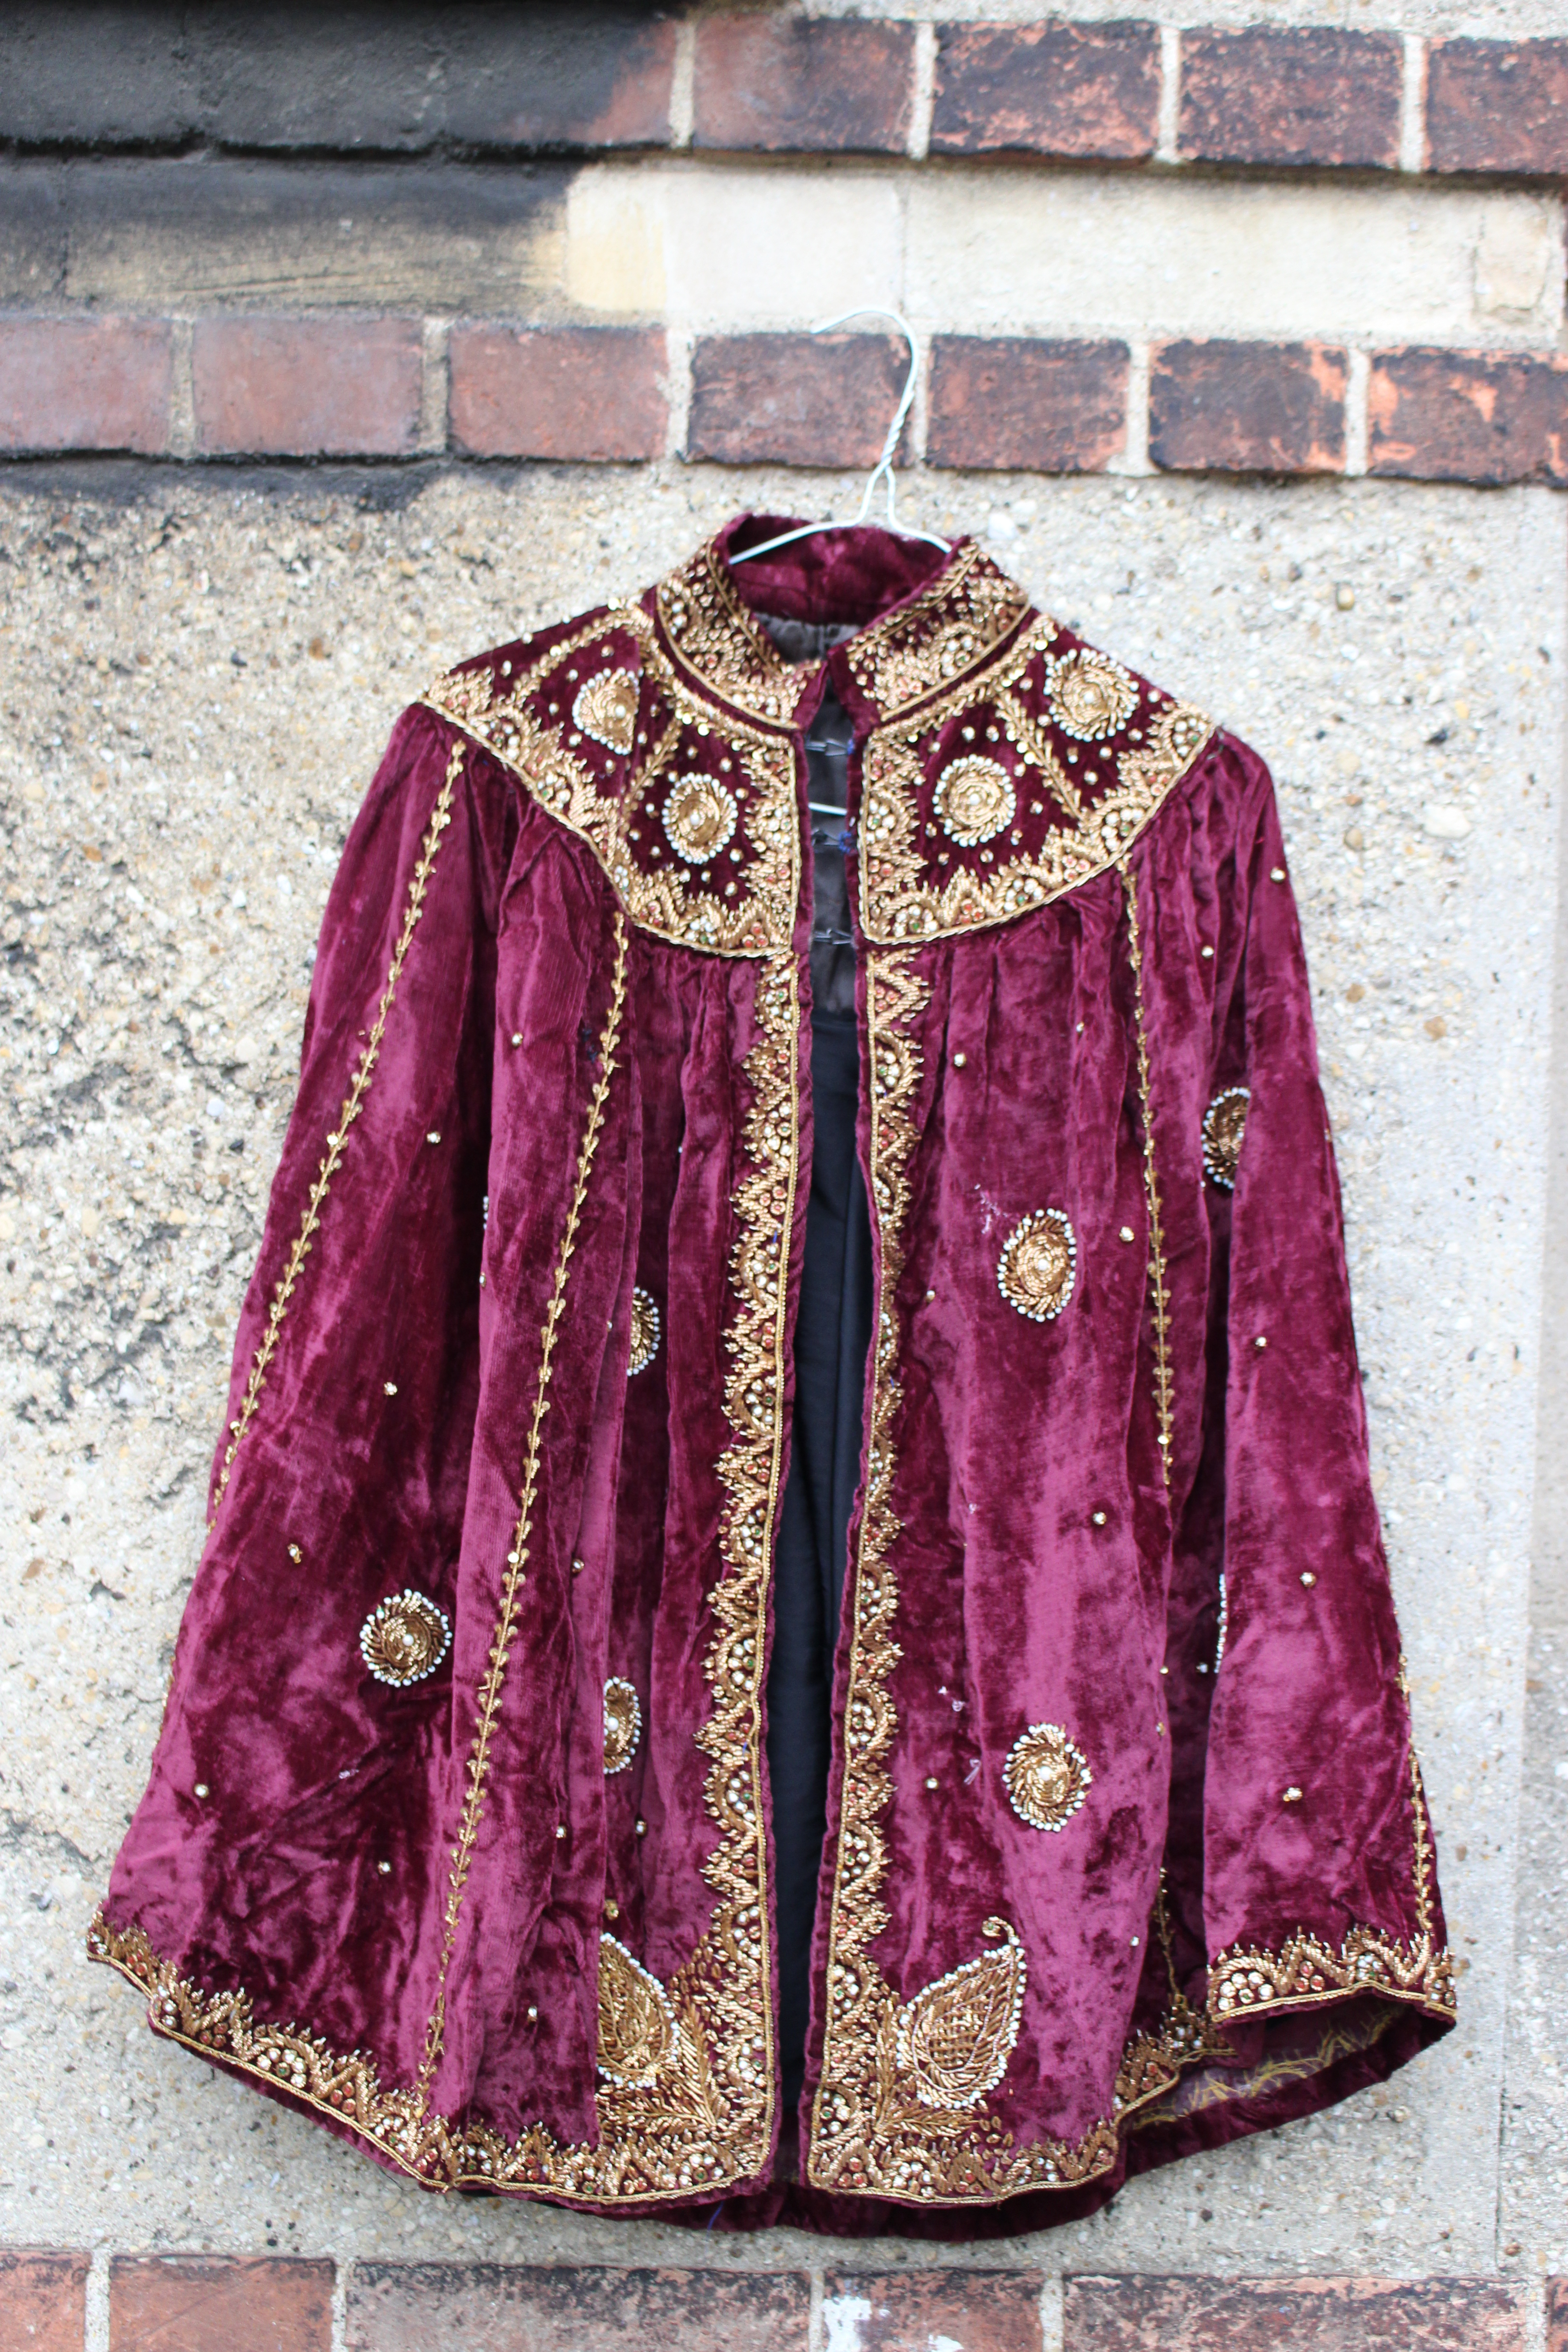 Maroon embroidered velvet turkish cape, from Unicorn, 5 Ship Street, Oxford